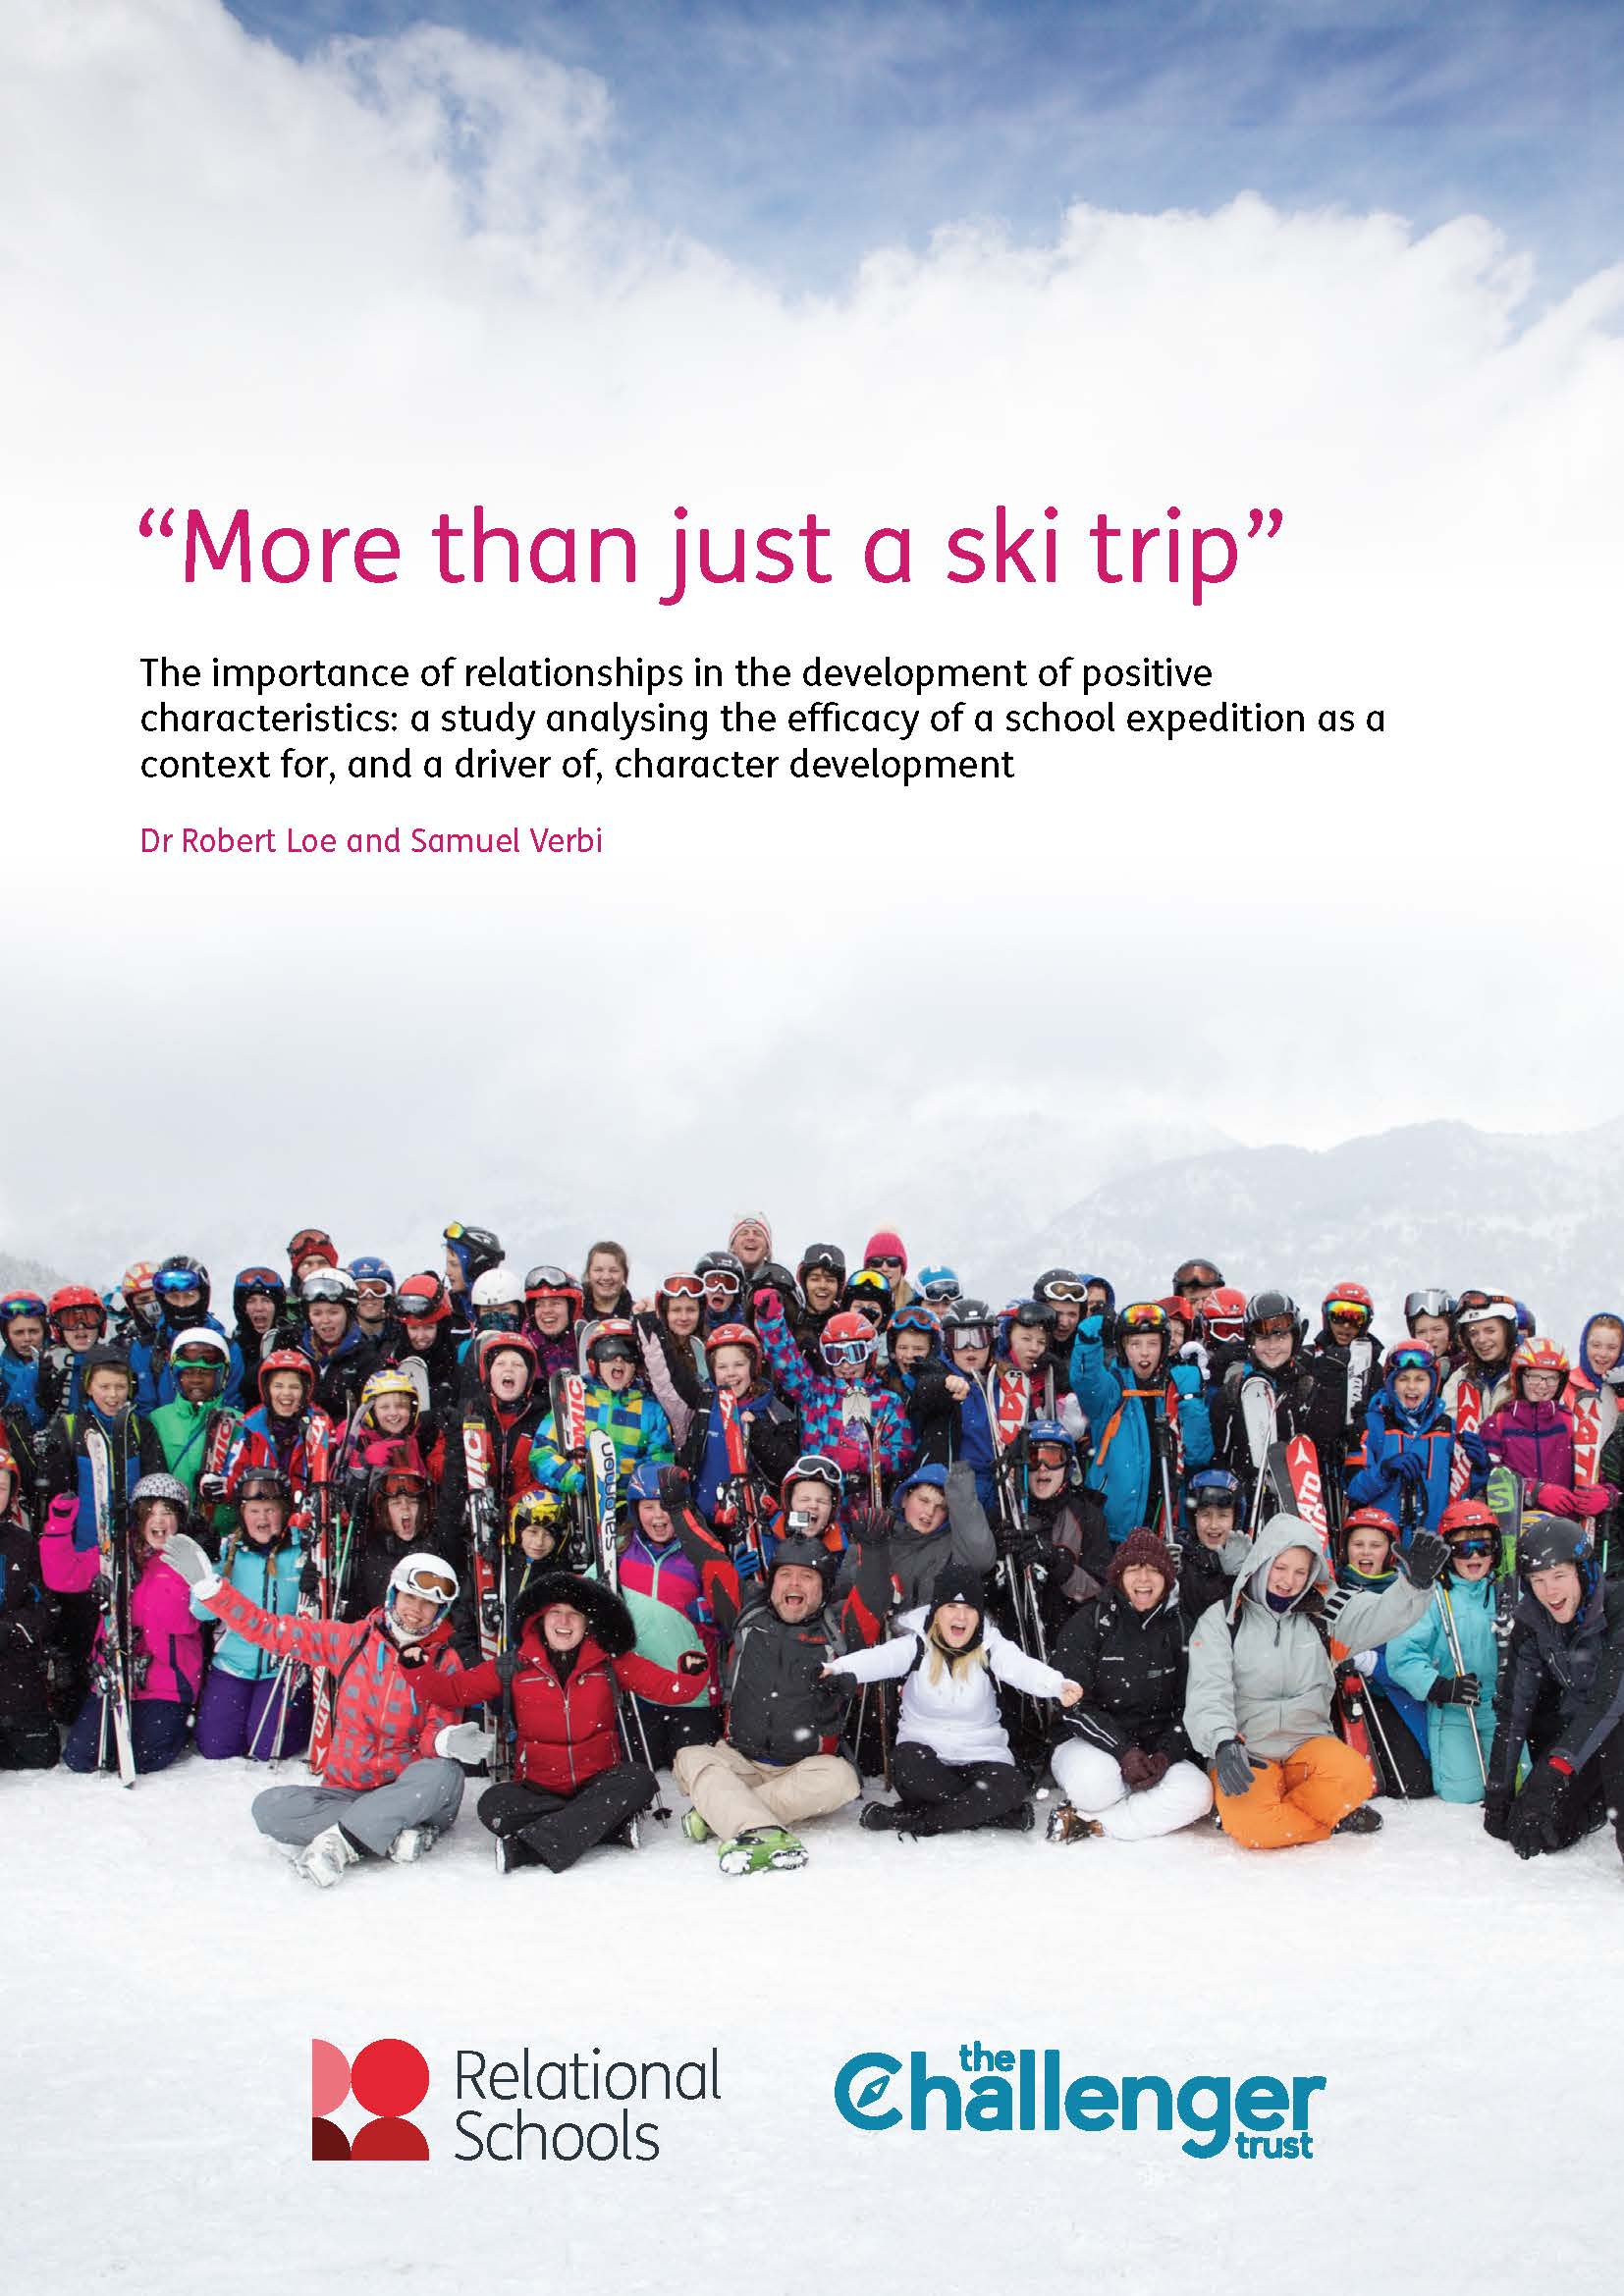 More-than-just-a-ski-trip-Relational-Schools-Foundation-Report_Page_01.jpg